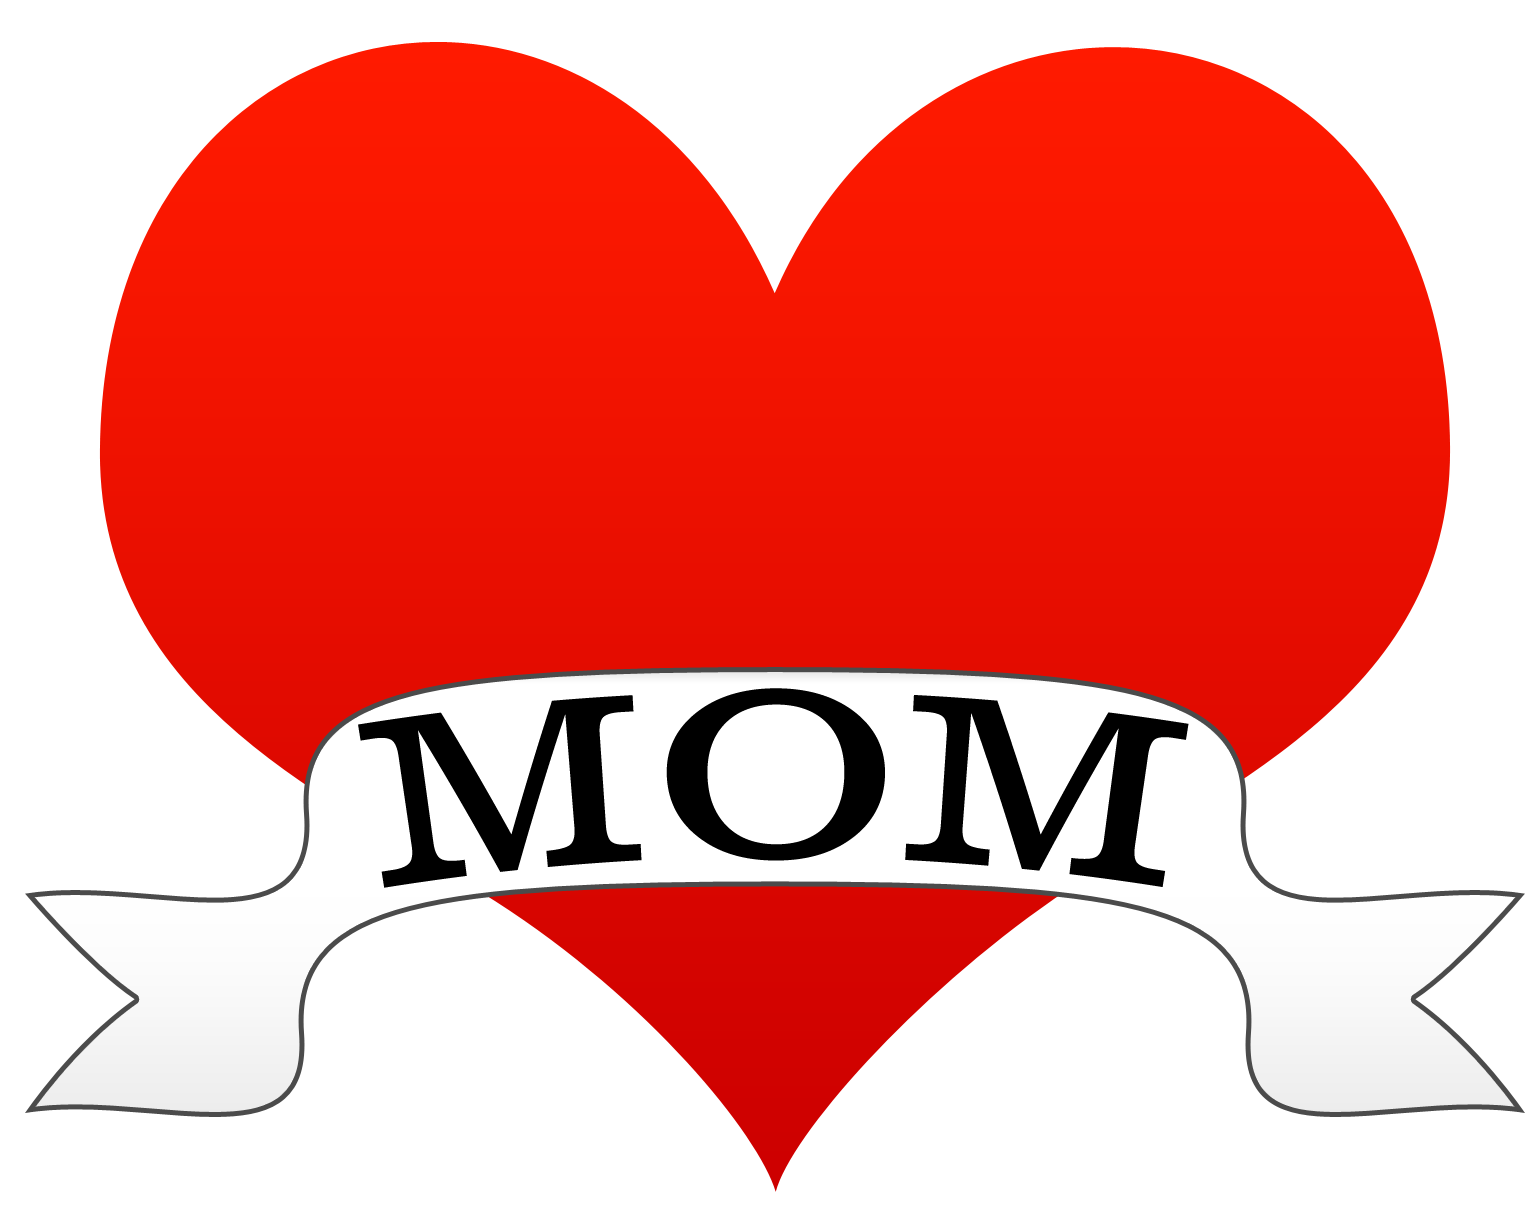 Mom heart png. Tattoo style clipart karen